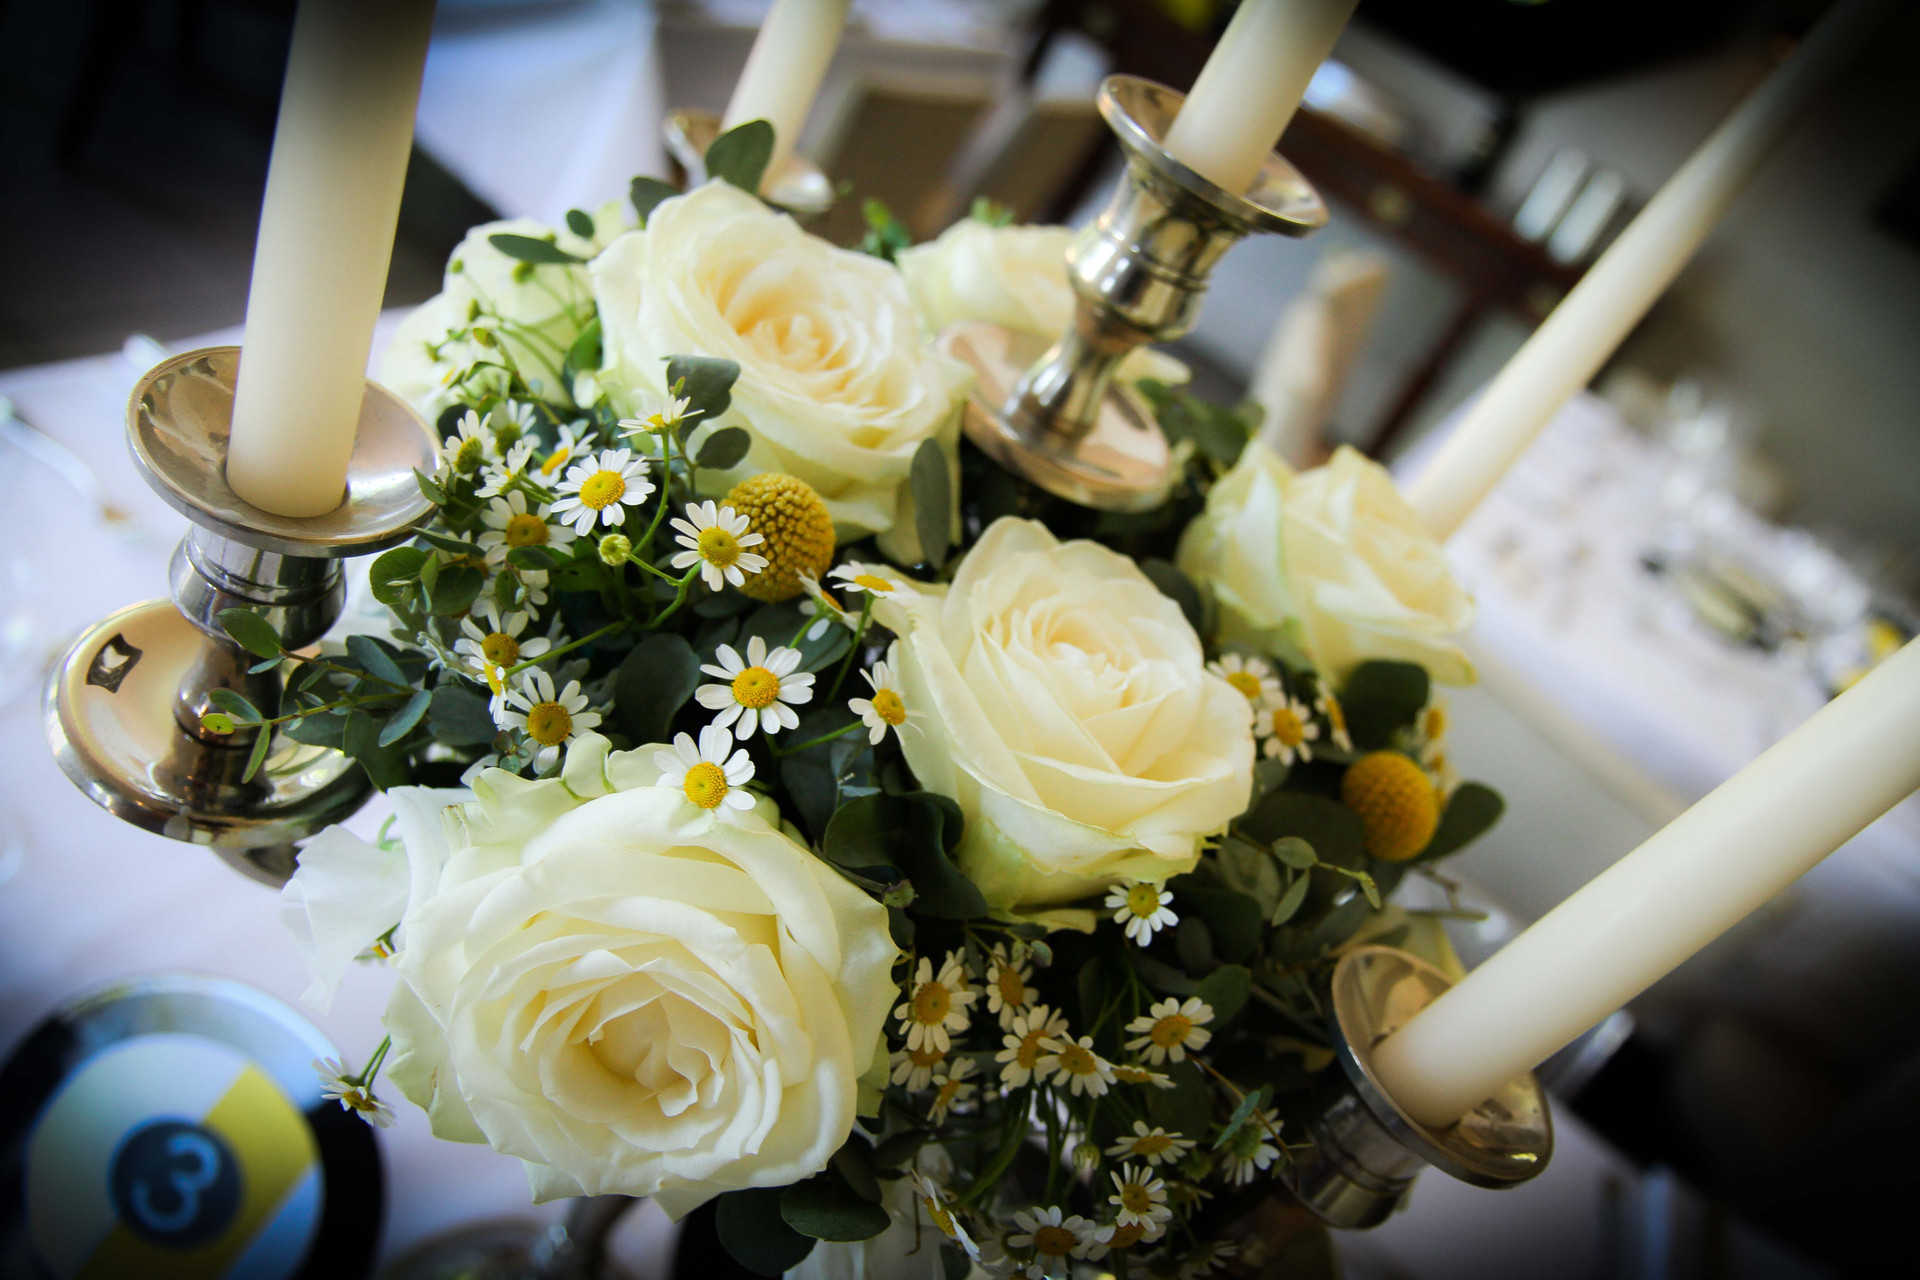 Candelabra ring of roses and daisies